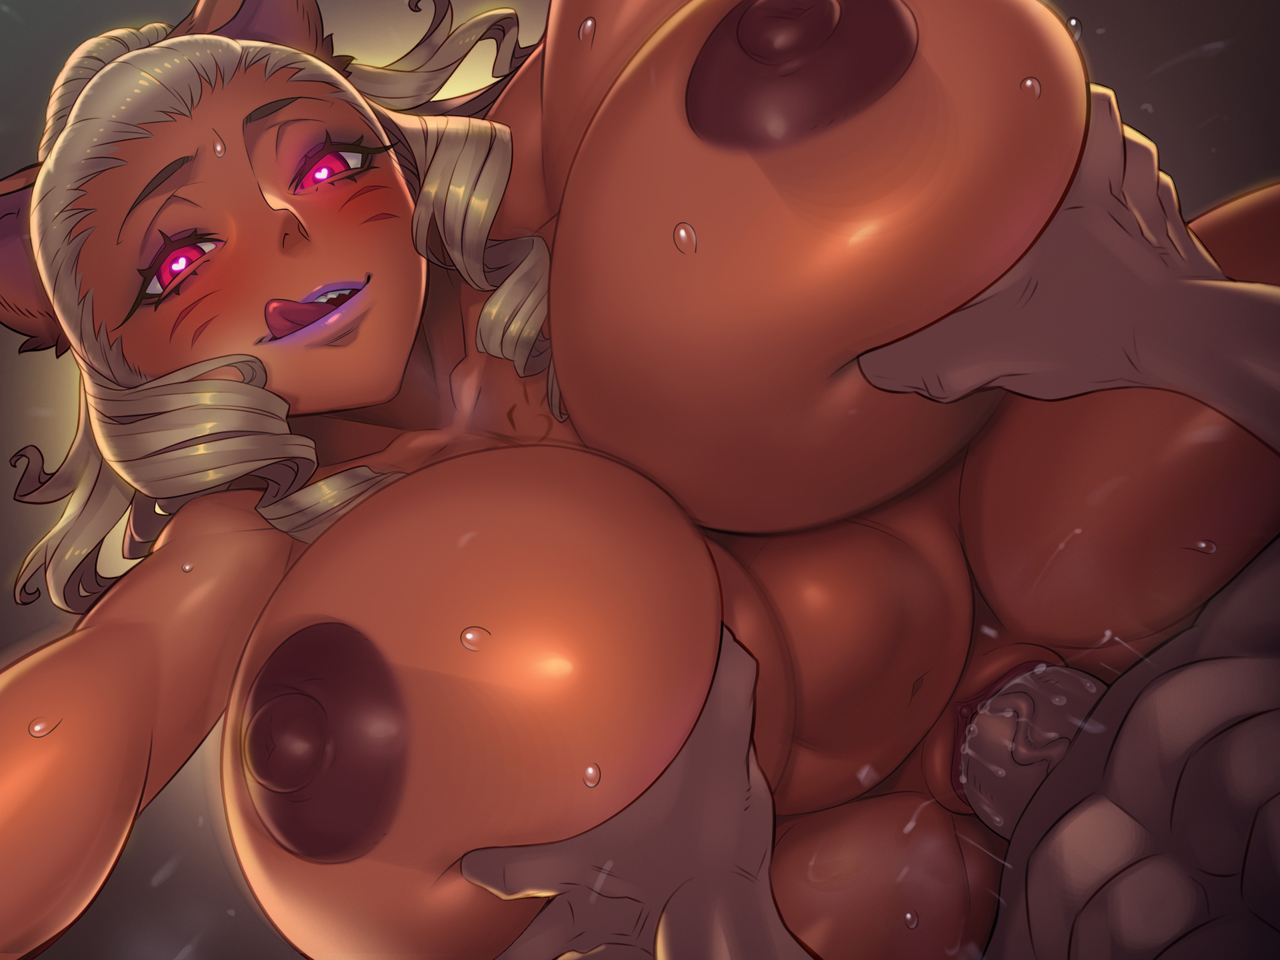 sethxzoe mhu'tiki legend of queen opala 1girls ahe gao animal ears areolae arm grab blonde hair breasts catgirl cat ears cat tail cum cum explosion dark-skinned female dark skin doggy style ejaculation huge breasts long hair mole mole on breast naughty face nipples penetration pussy juice seductive seductive smile sex shortstack smile stomach bulge straight tail tattoo thick thighs vaginal penetration